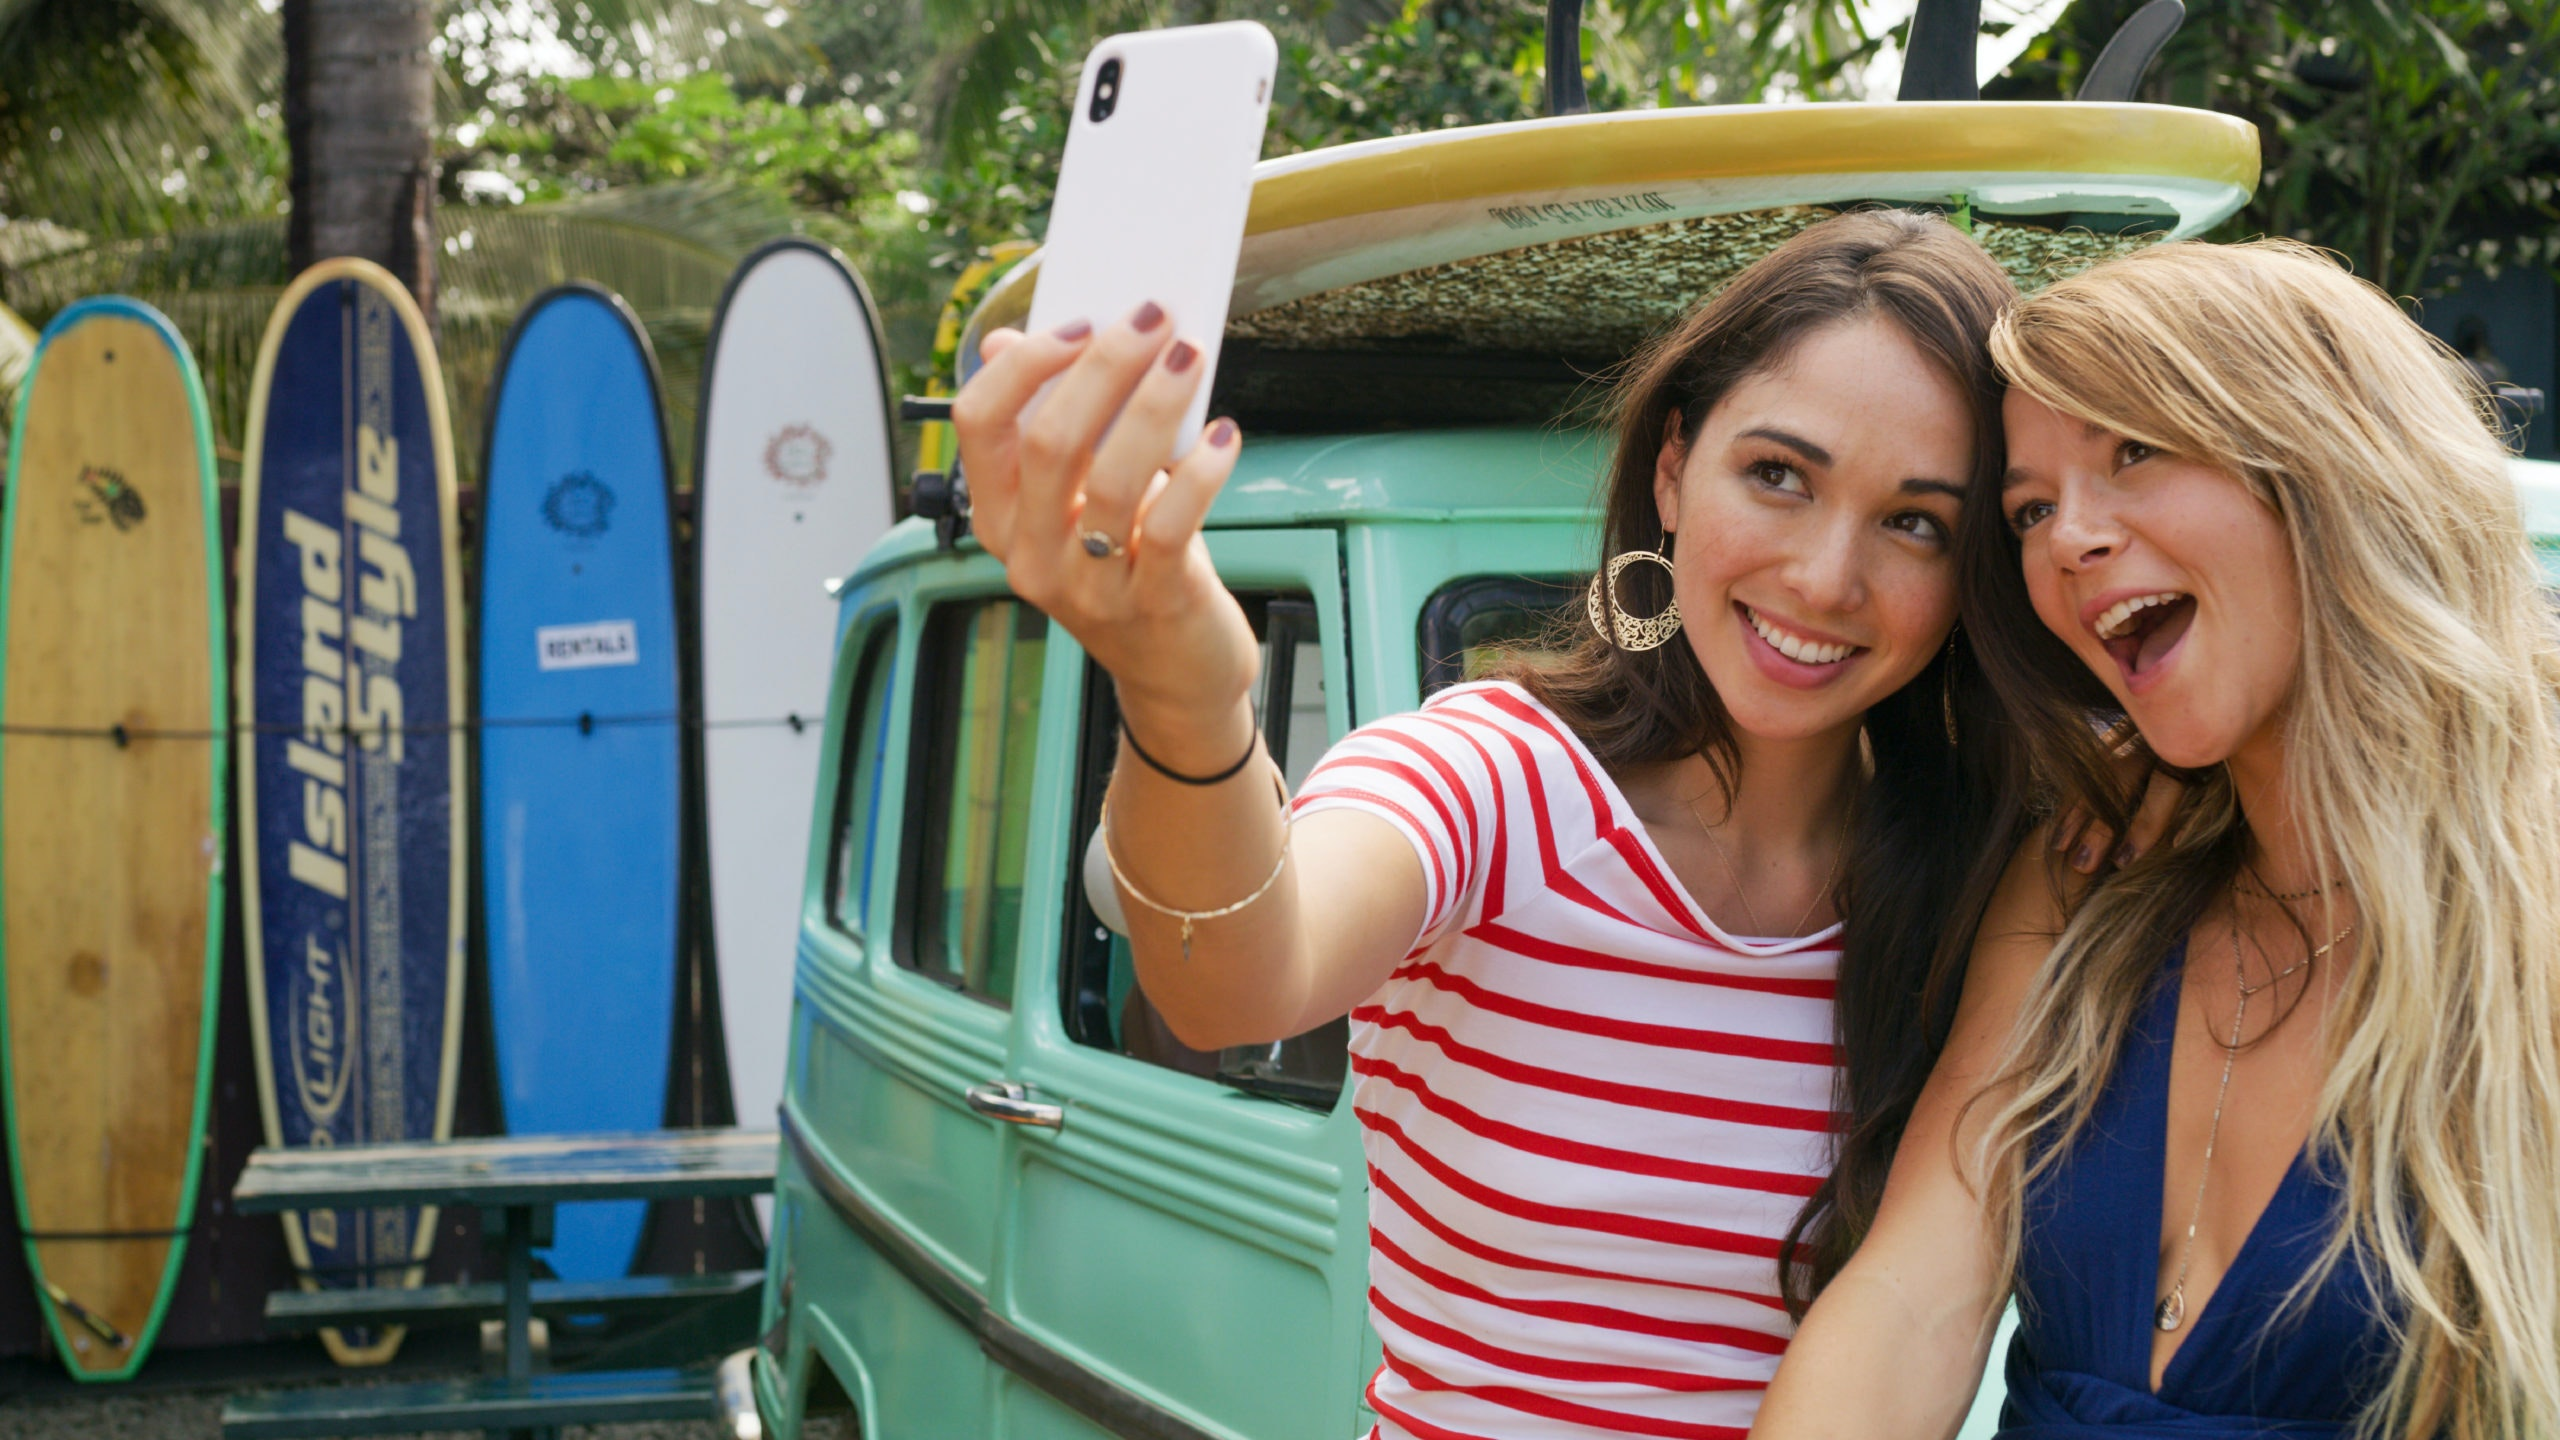 Two women standing in front of van and surfboards take a selfie